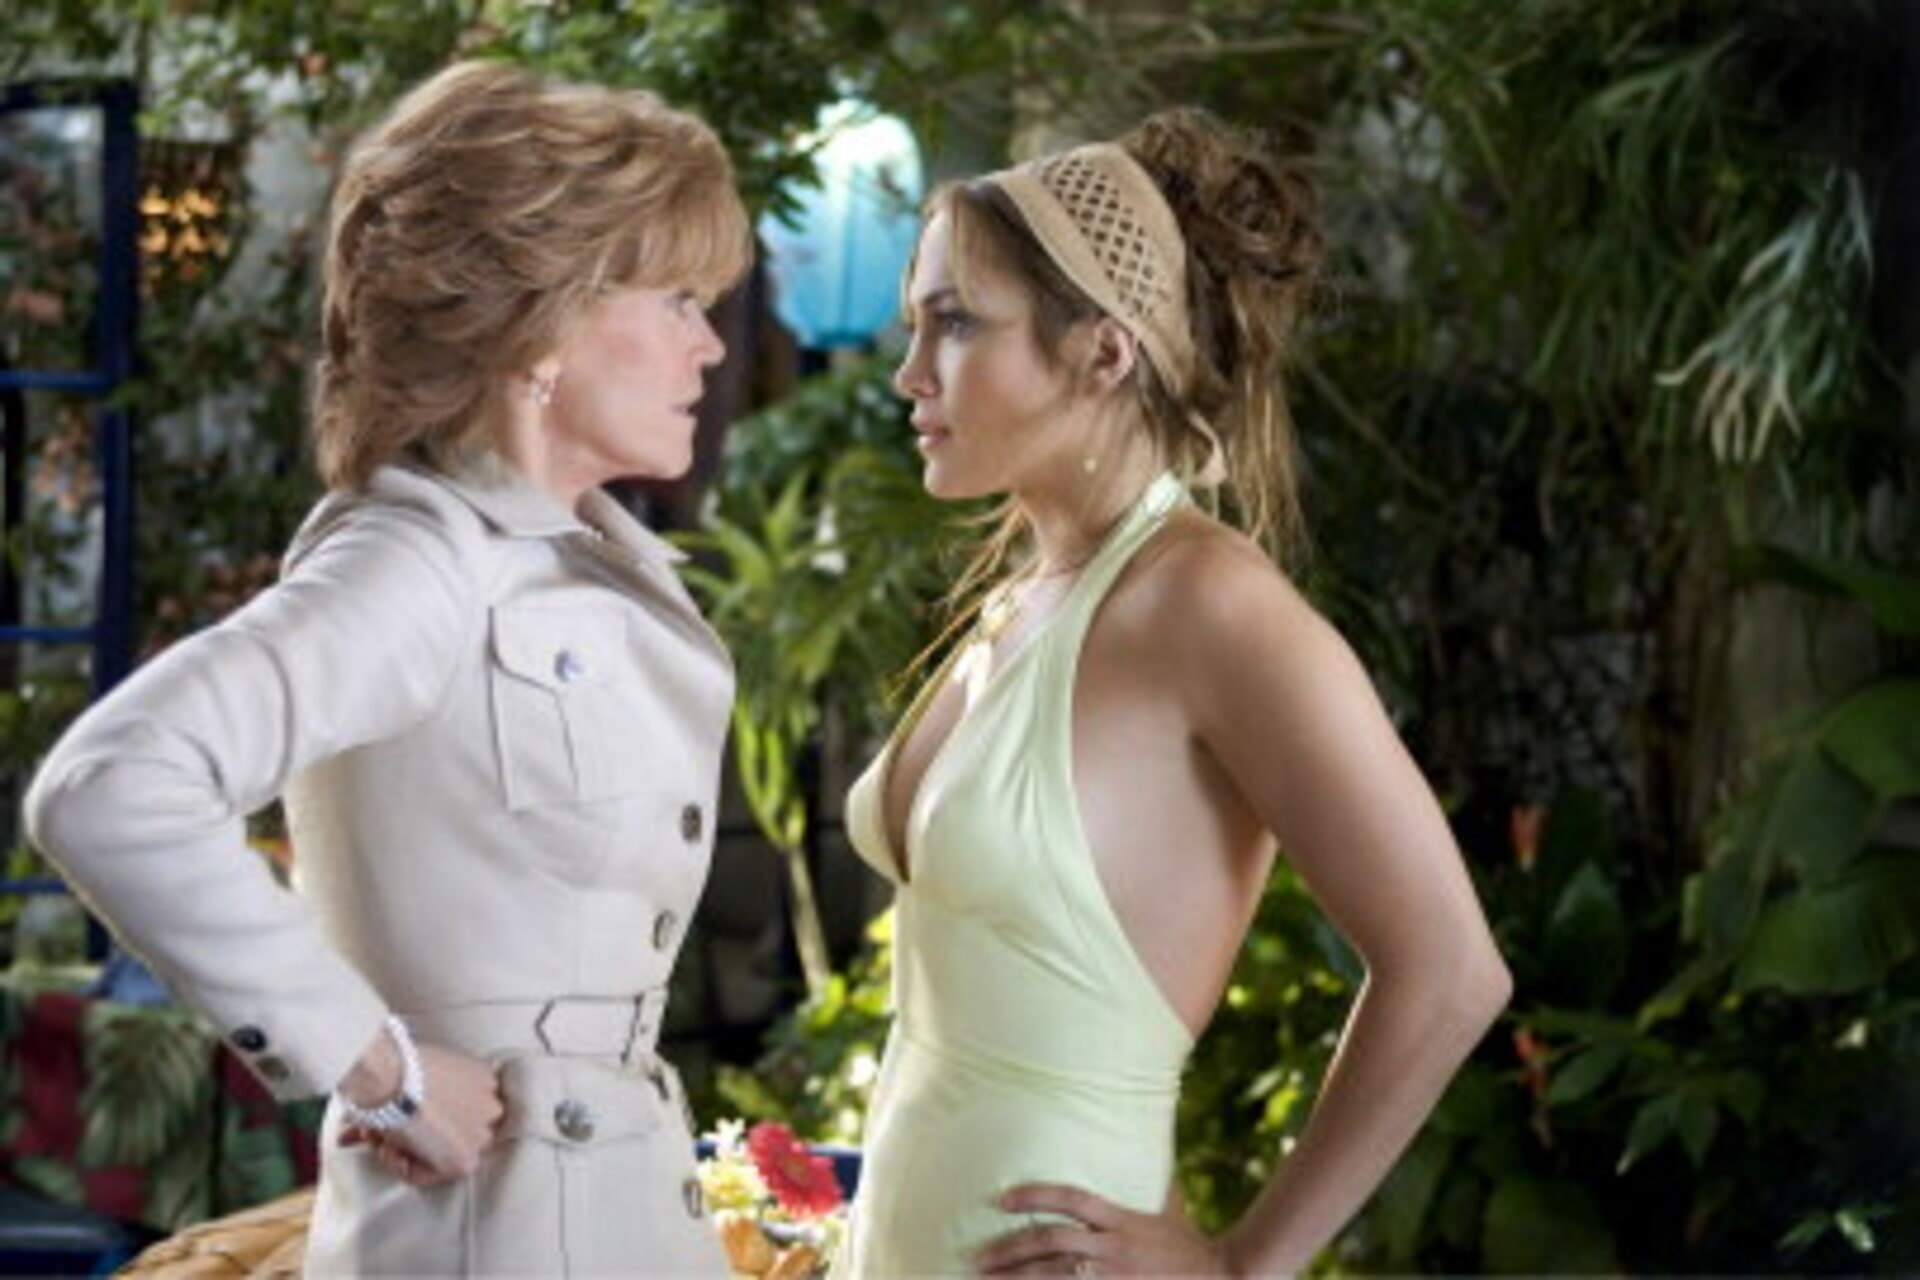 Monster-in-law - Image 10